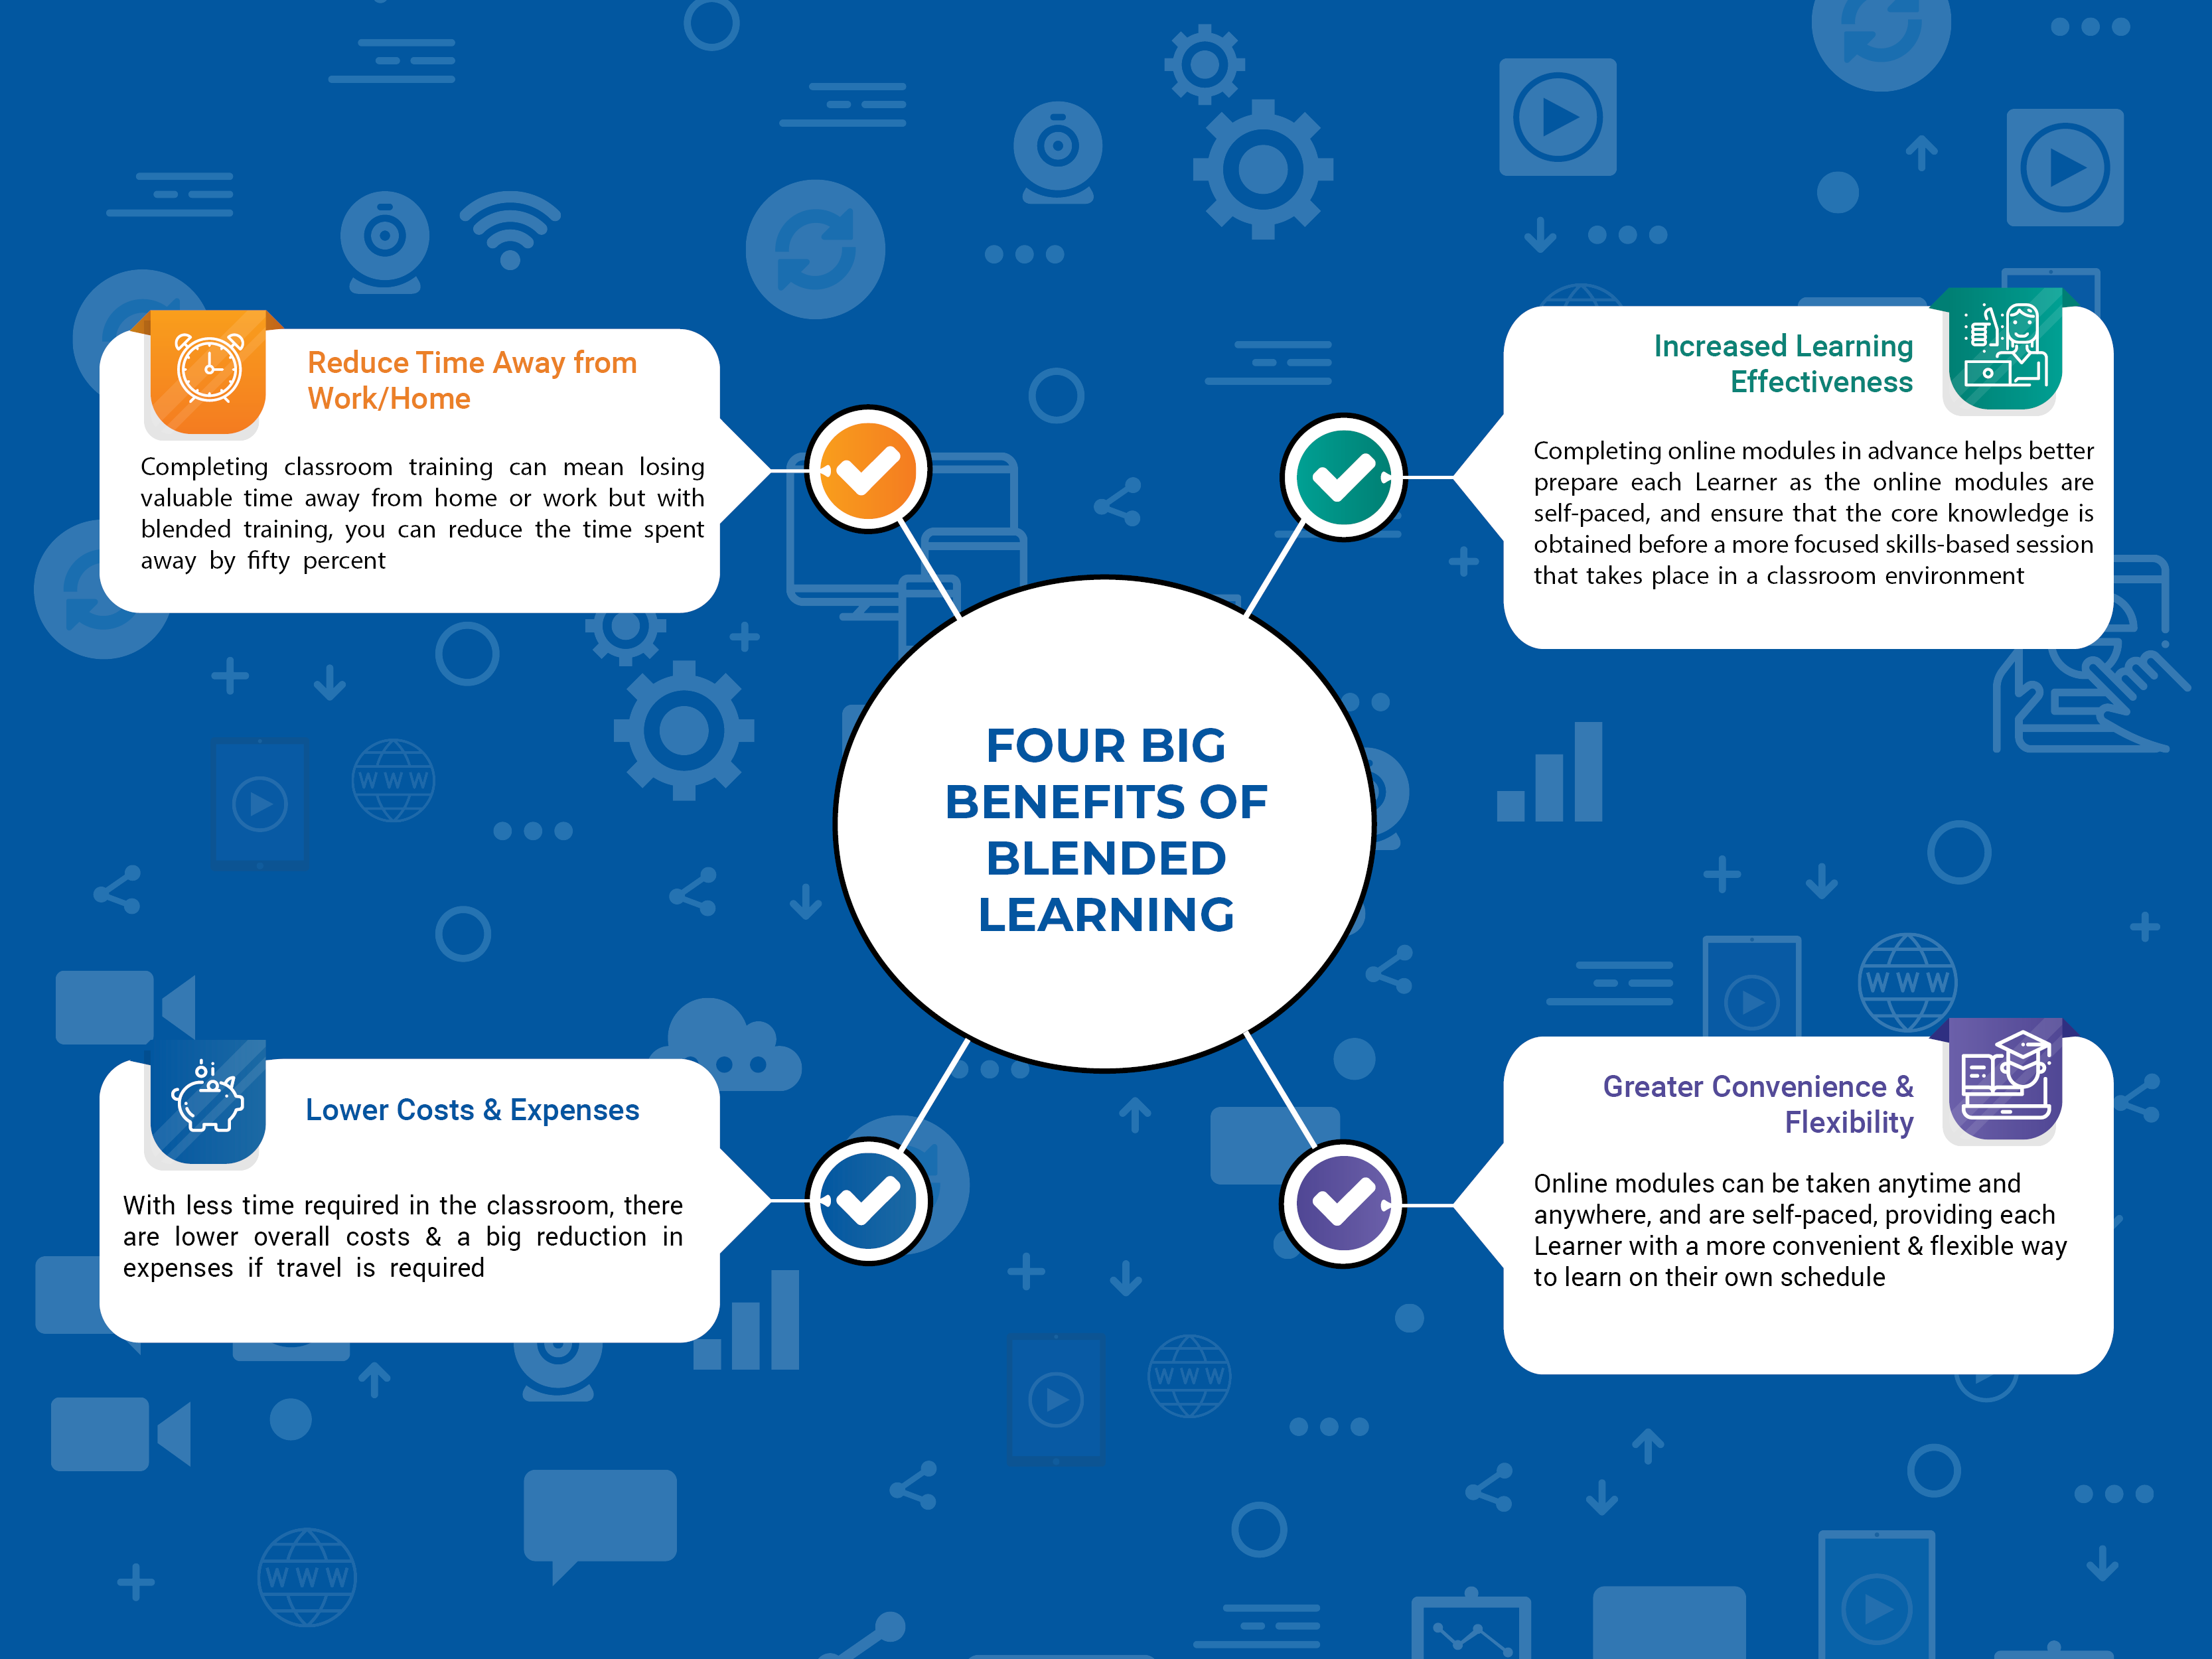 Big Benefits of Blended Learning